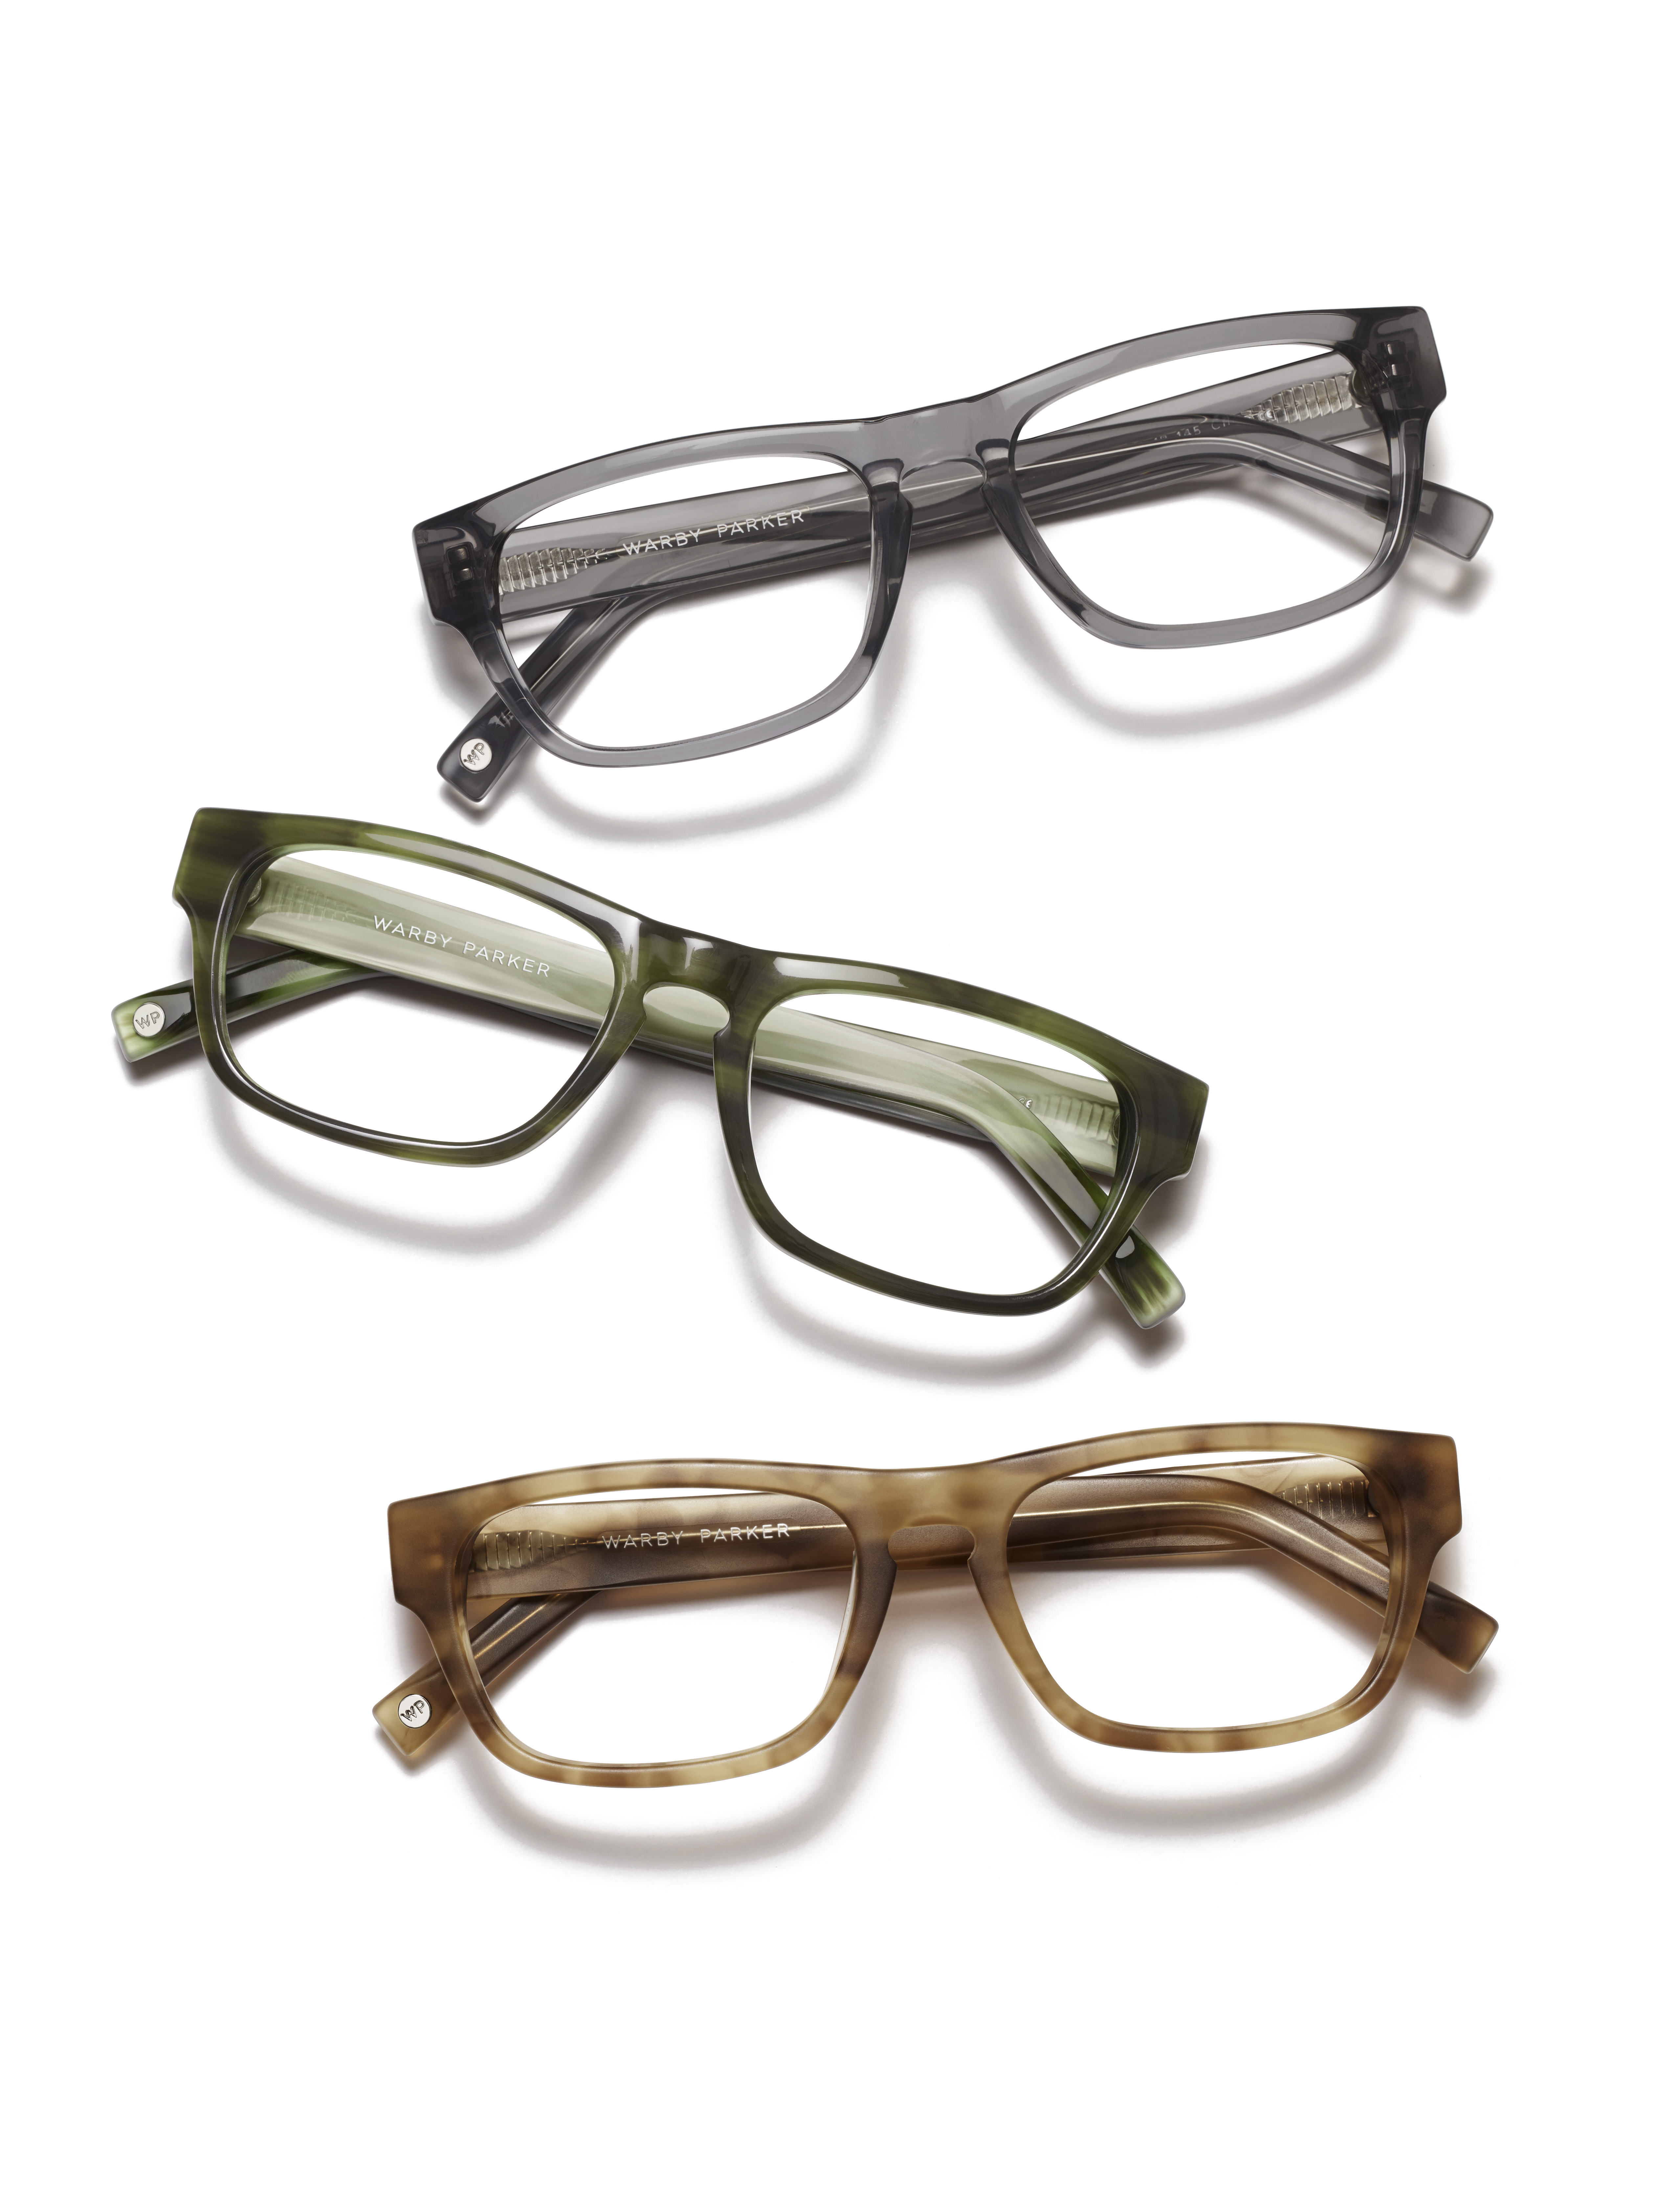 The Roosevelt Collection in Sandalwood Matte, Mallard Green, and Early Grey sold exclusively at the Walnut Street store.